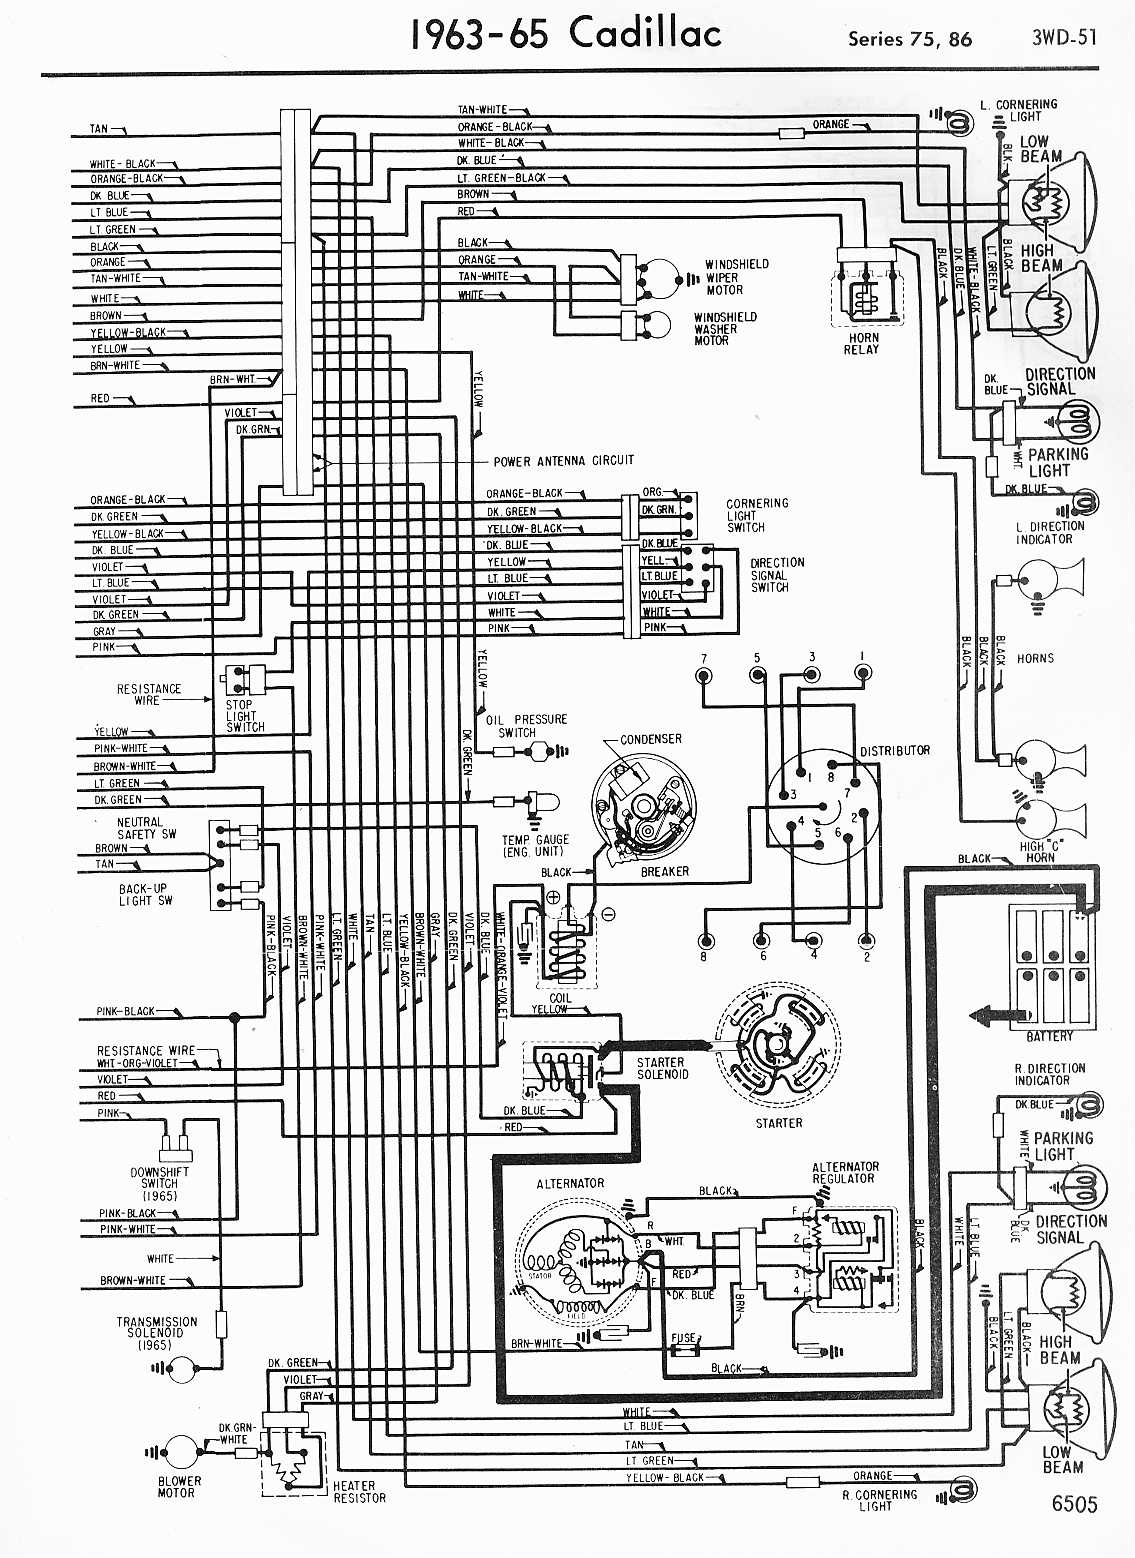 MWireCadi65_3WD 051 cadillac wiring diagrams 1957 1965 Ford Alternator Wiring Diagram at reclaimingppi.co